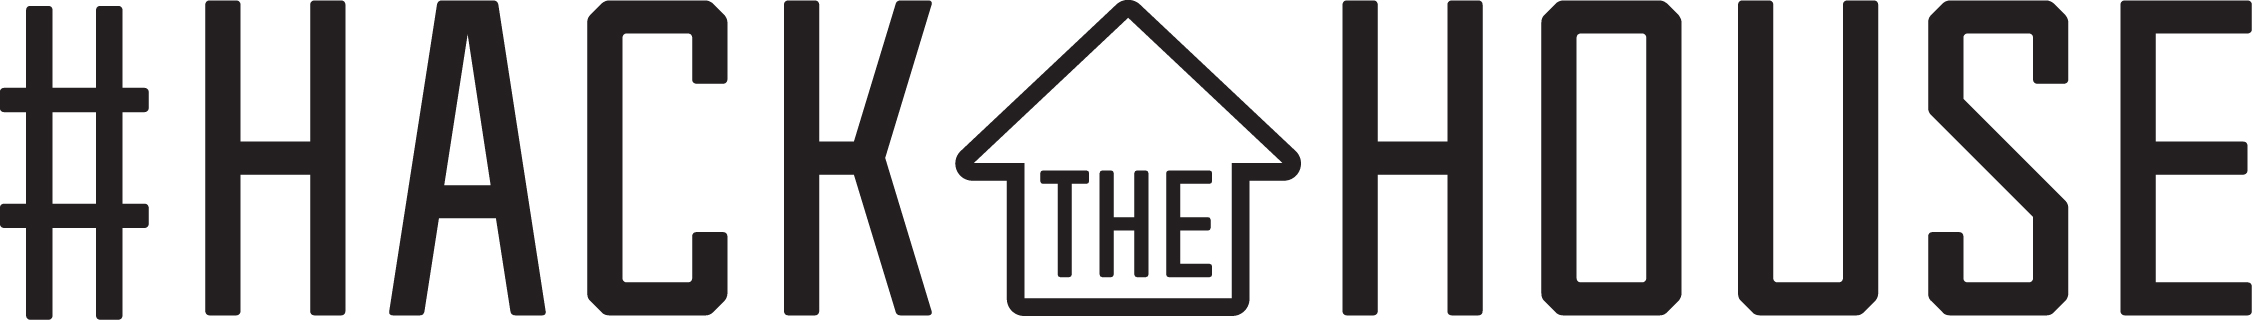 #HacktheHouse